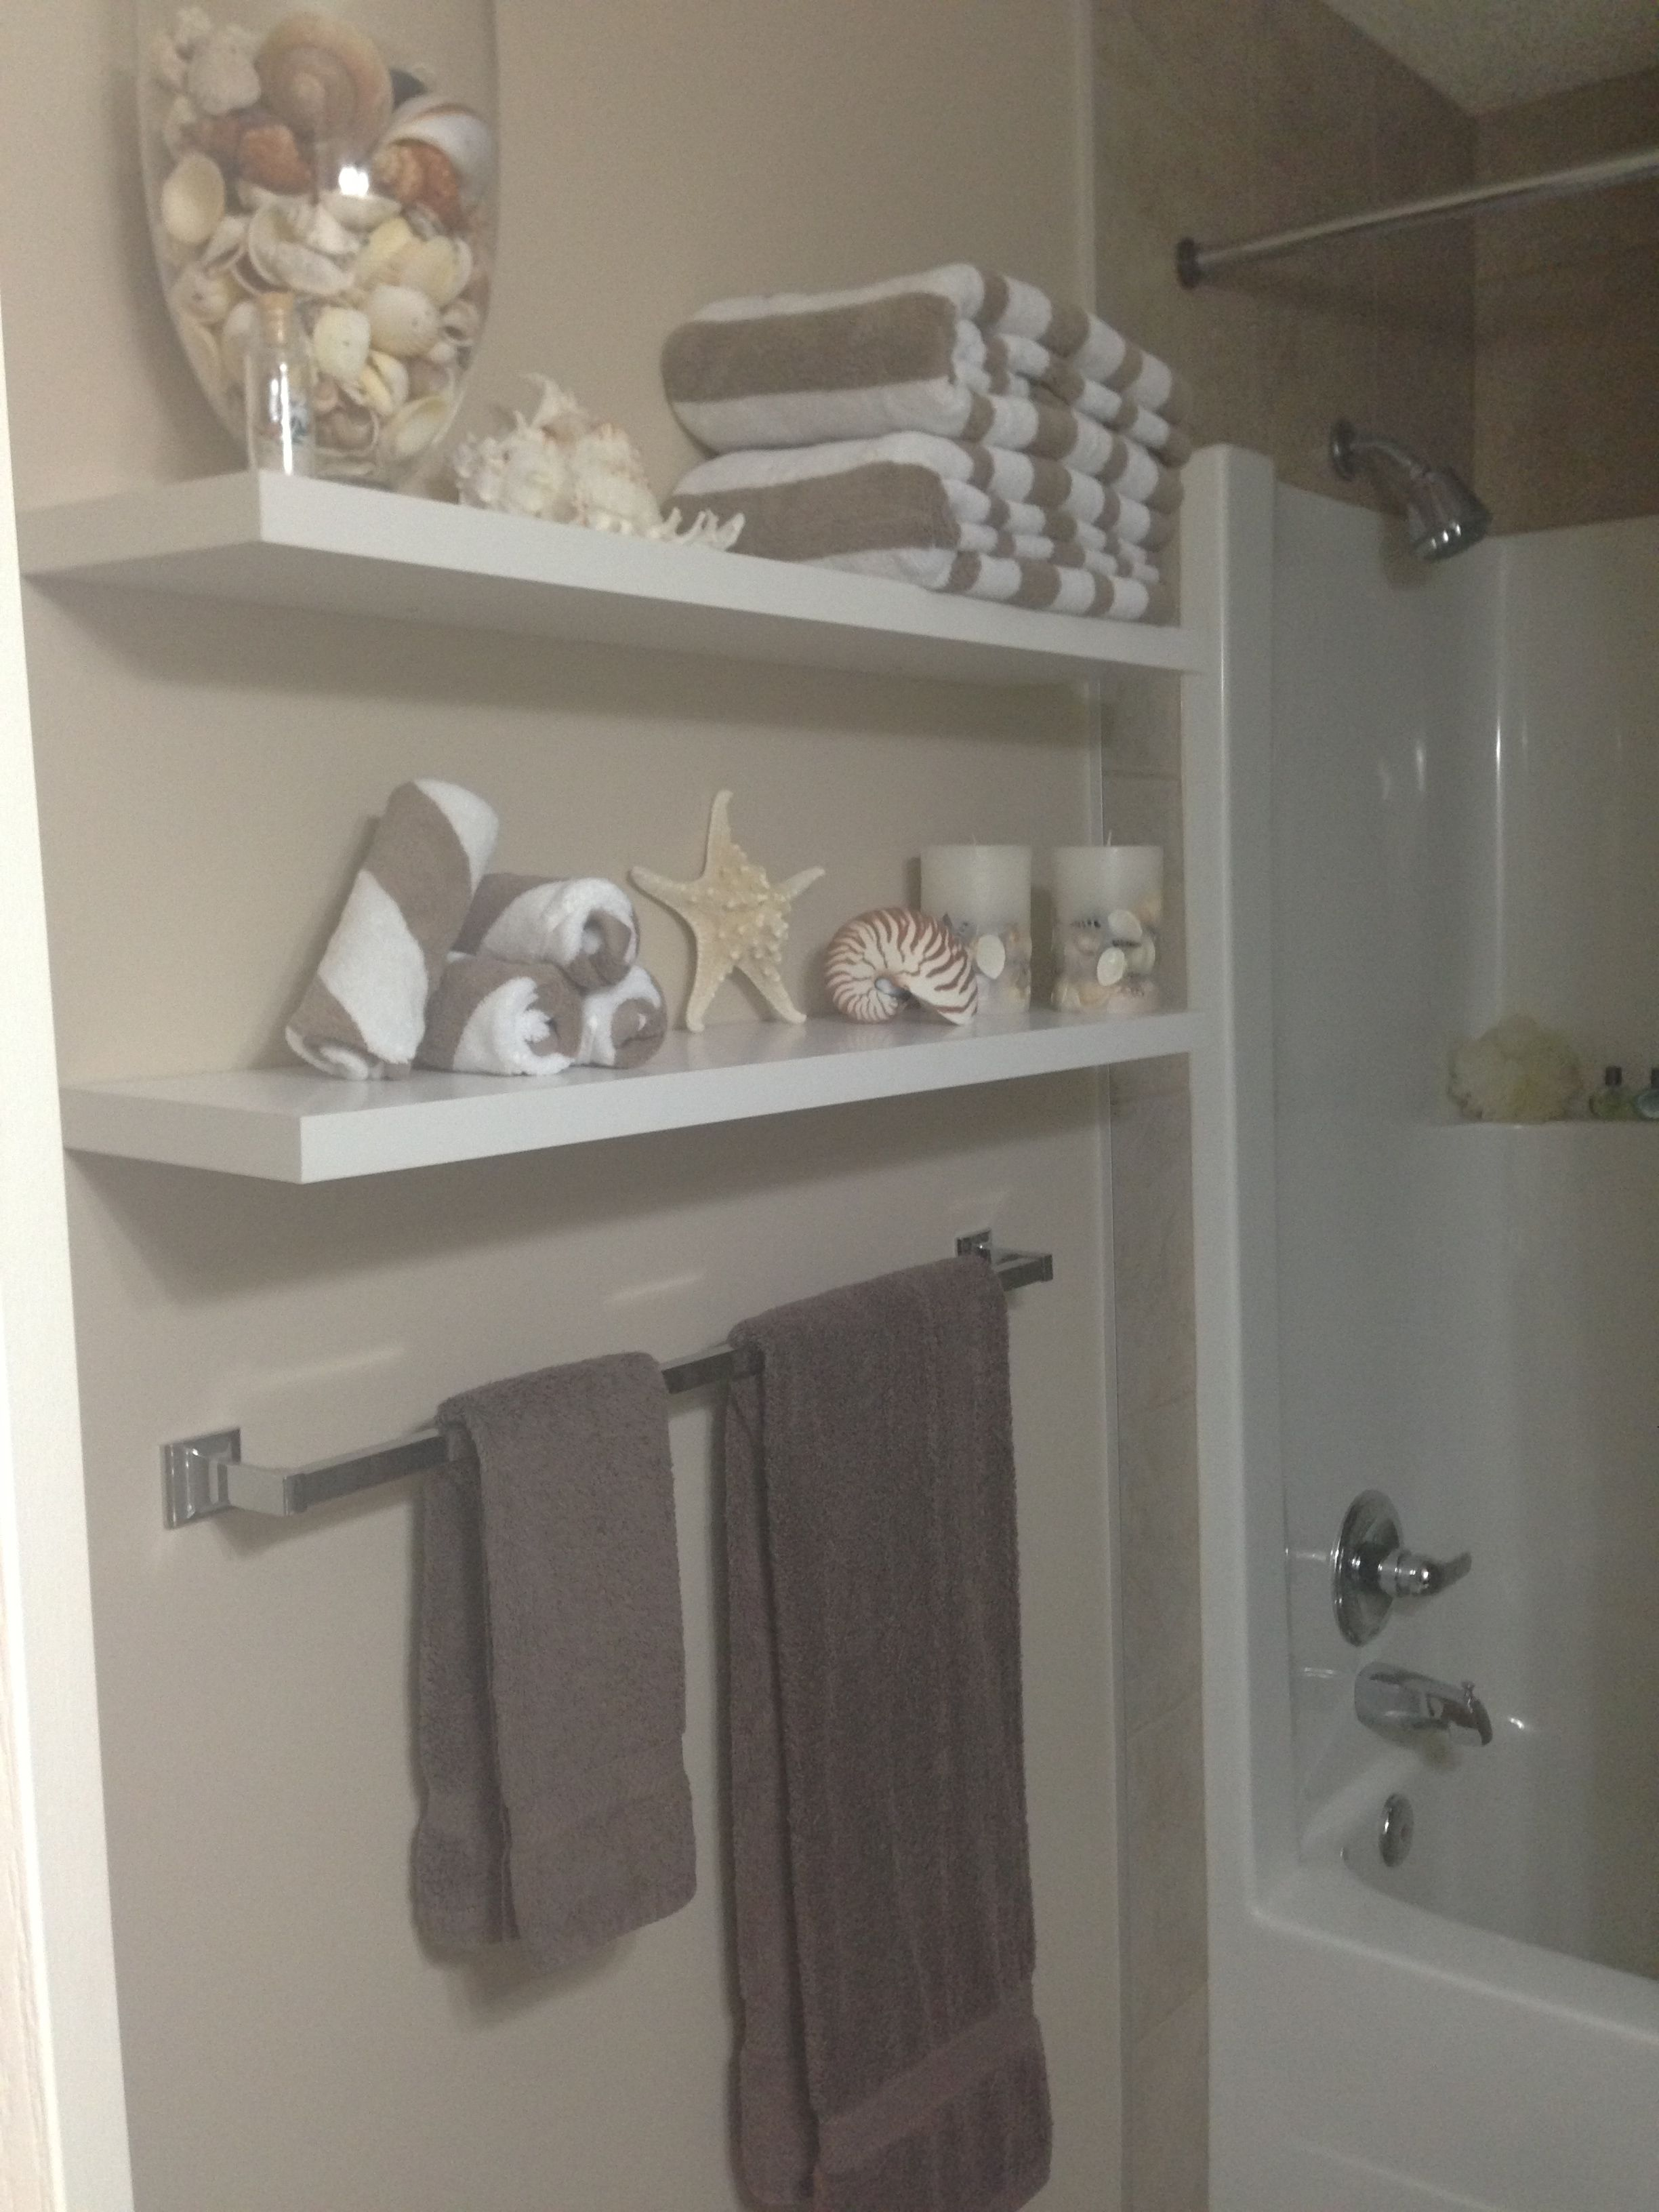 Seashore Bathroom, Shelf For Knick Knacks.